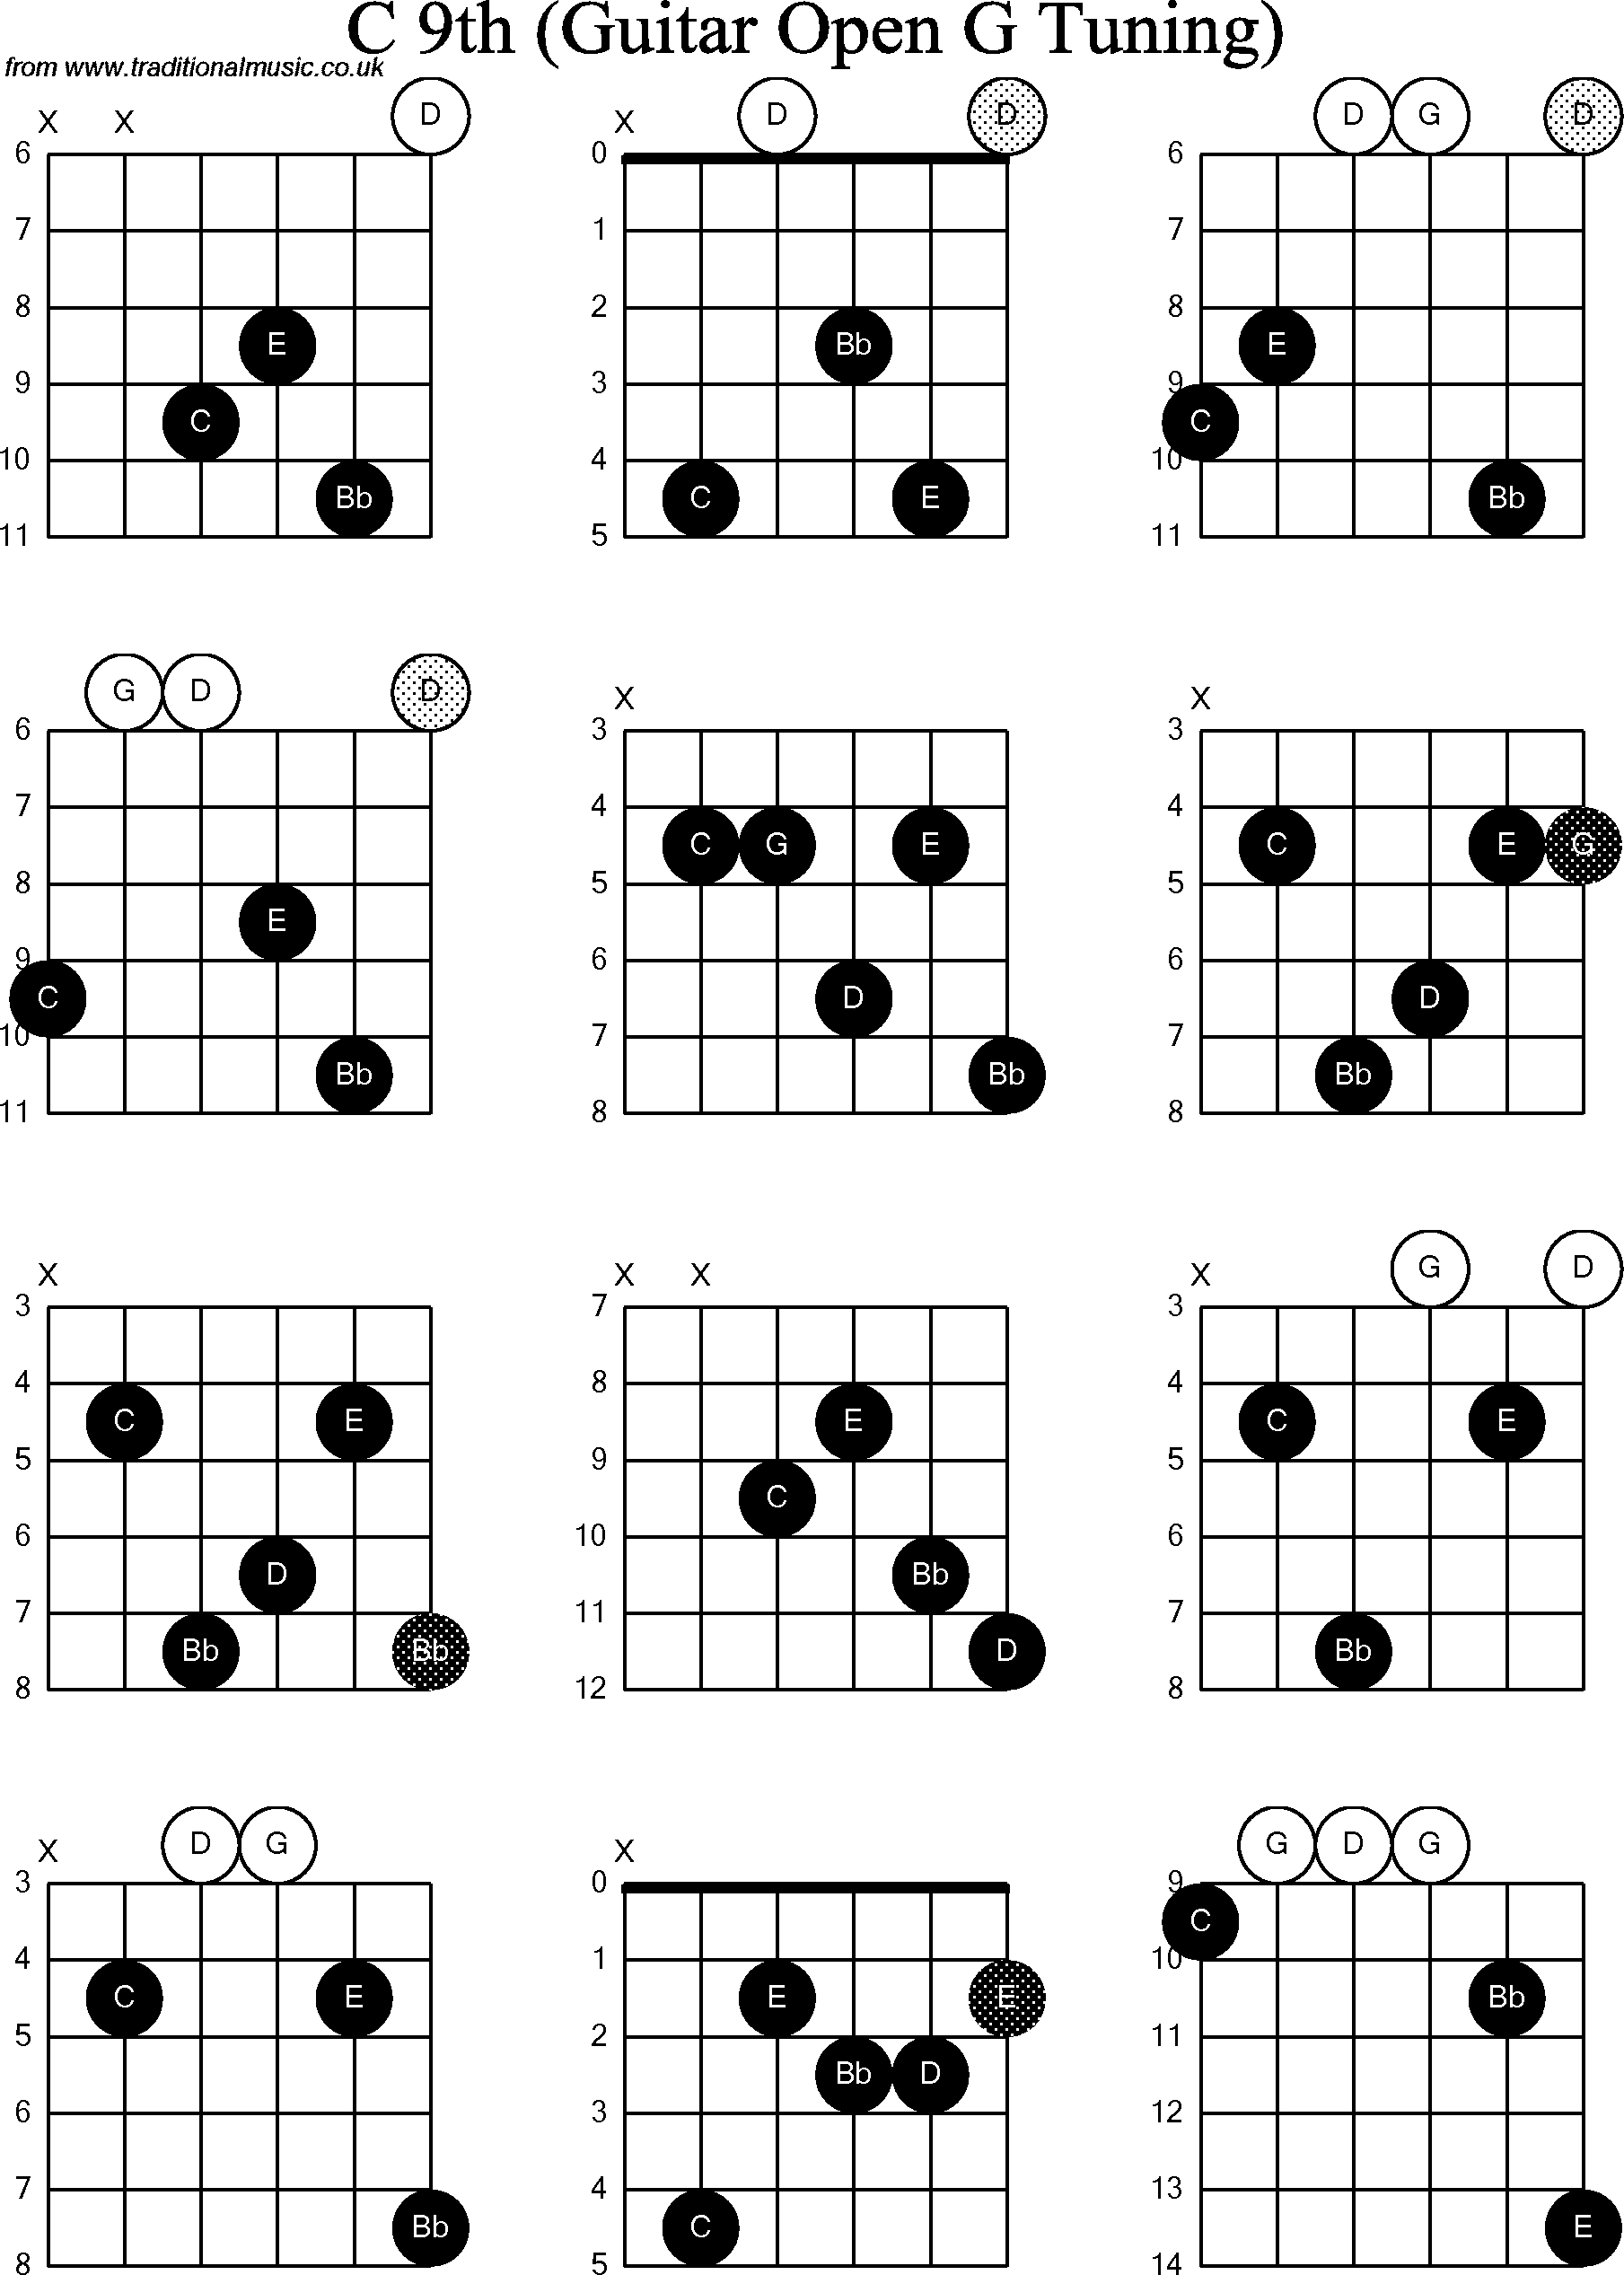 Chord Diagrams For Dobro C9th